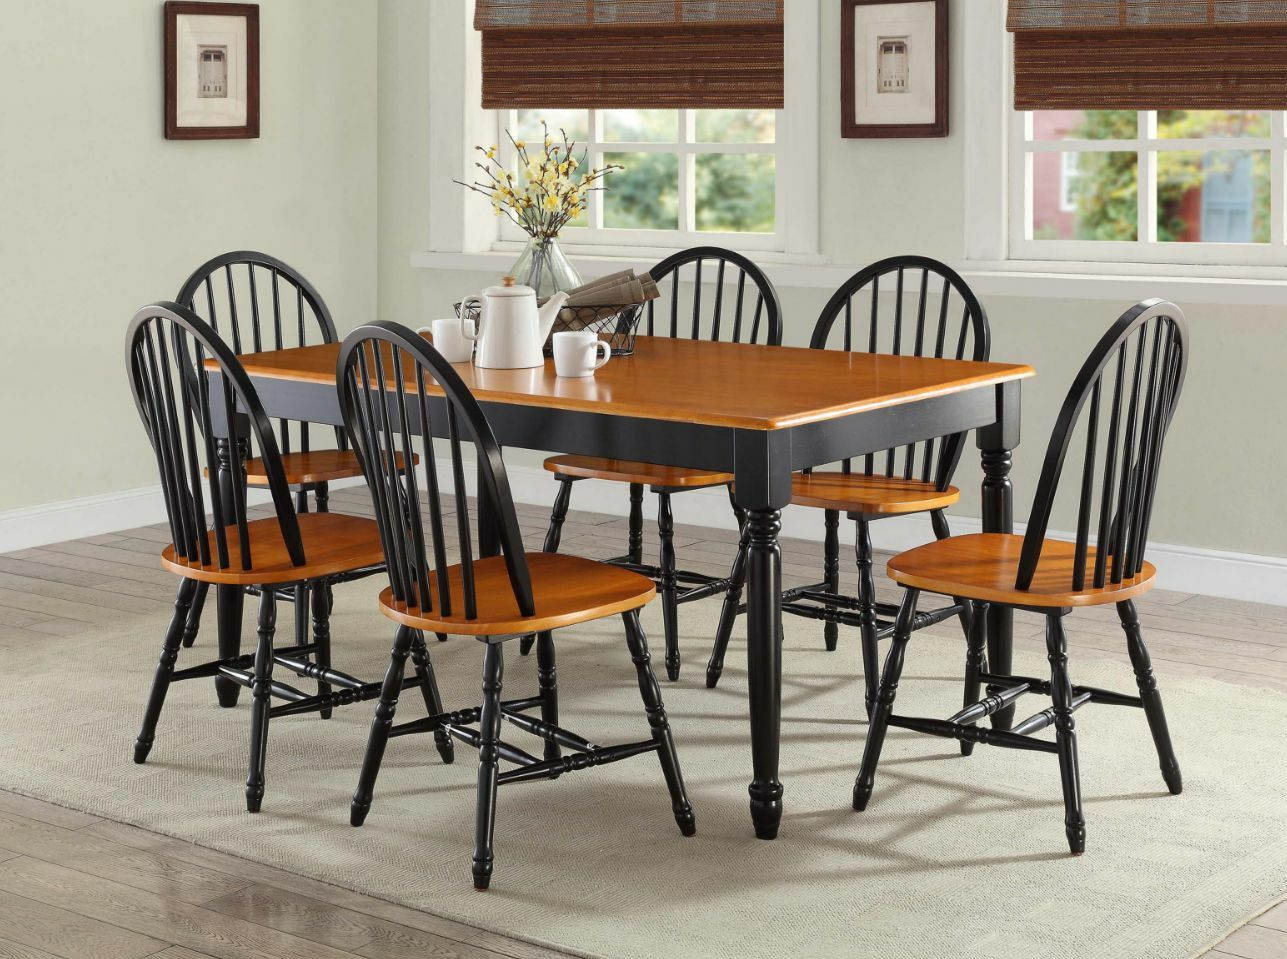 7 Pc Dining Room Sets Table Chairs Wood